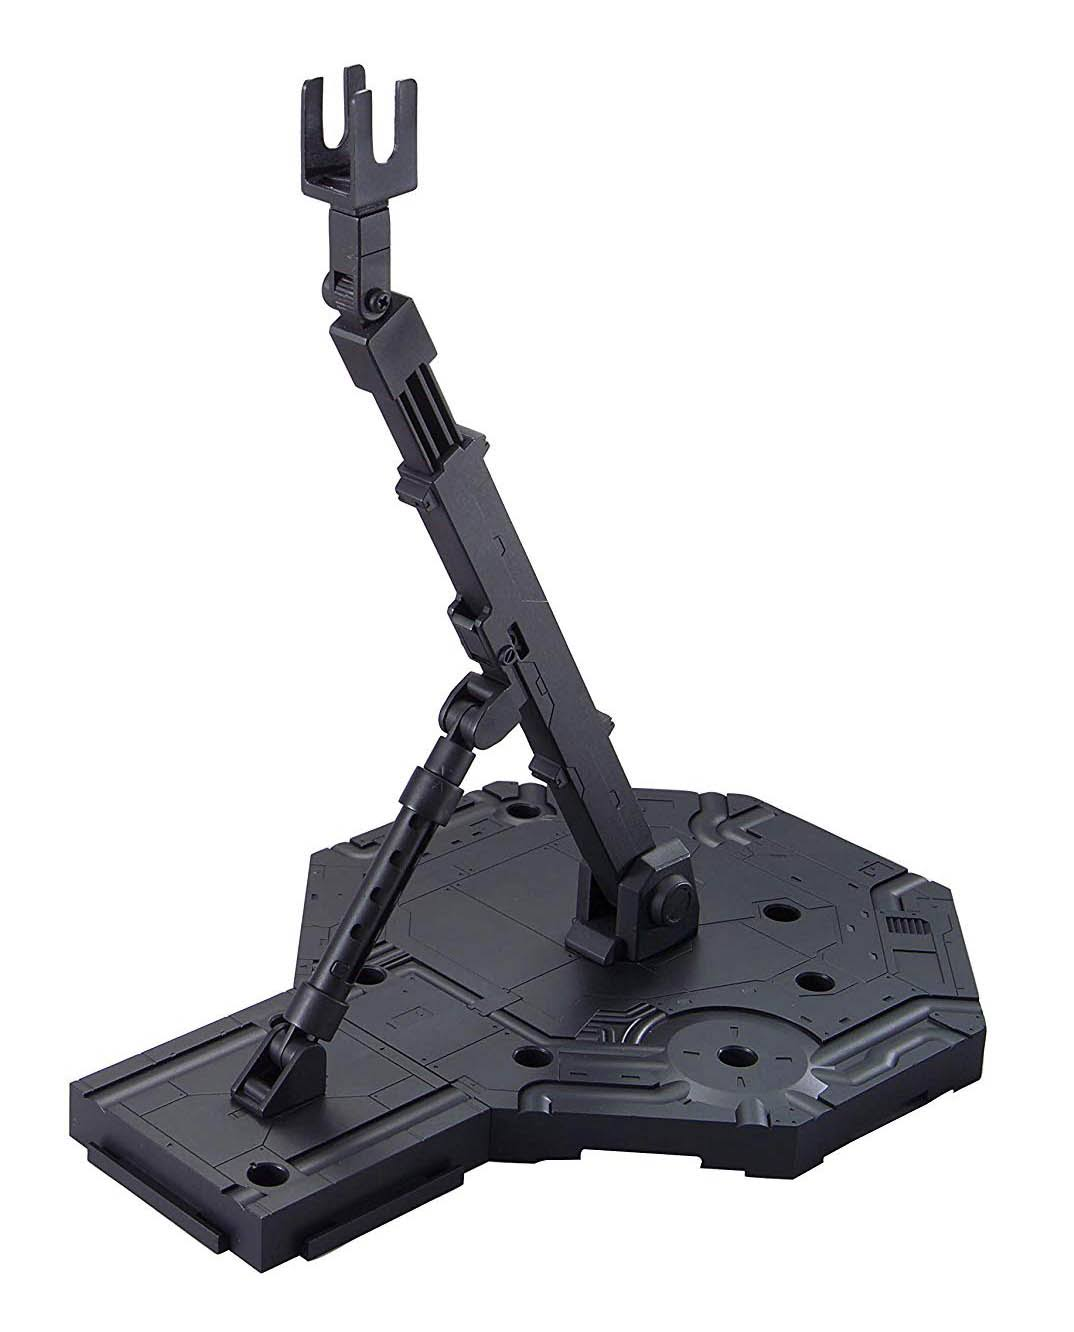 Gundam Plastic Model Action Base - Black